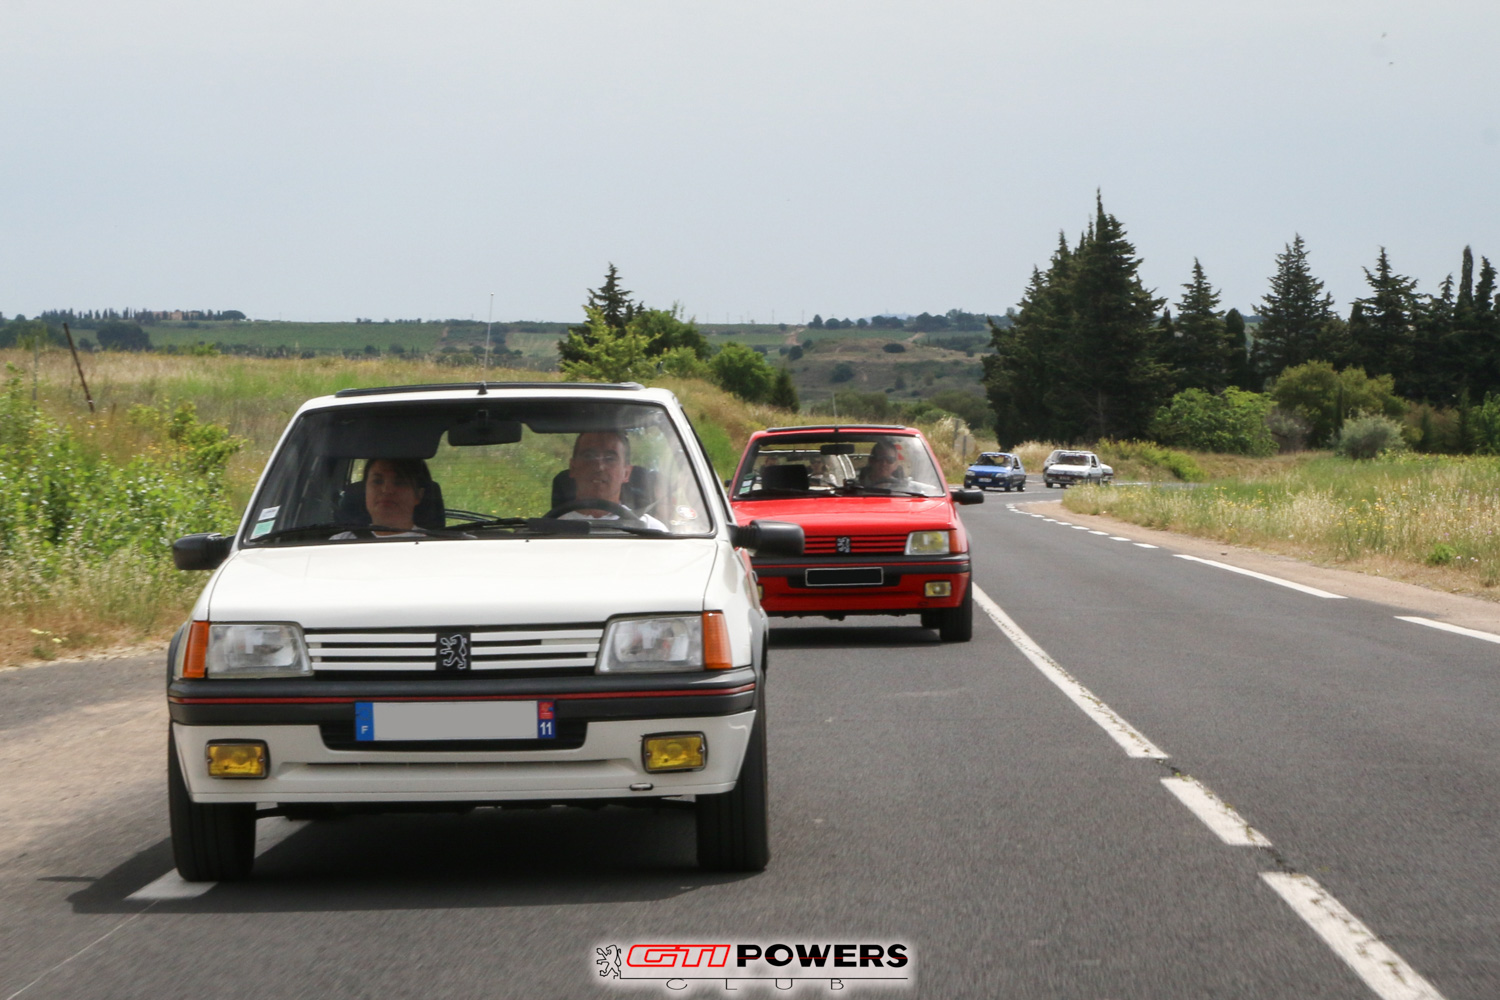 [GTIPOWERS DAYS] Nationale #4 - 8-9-10 Juin 2019 - Beziers - Page 8 Gtipow83